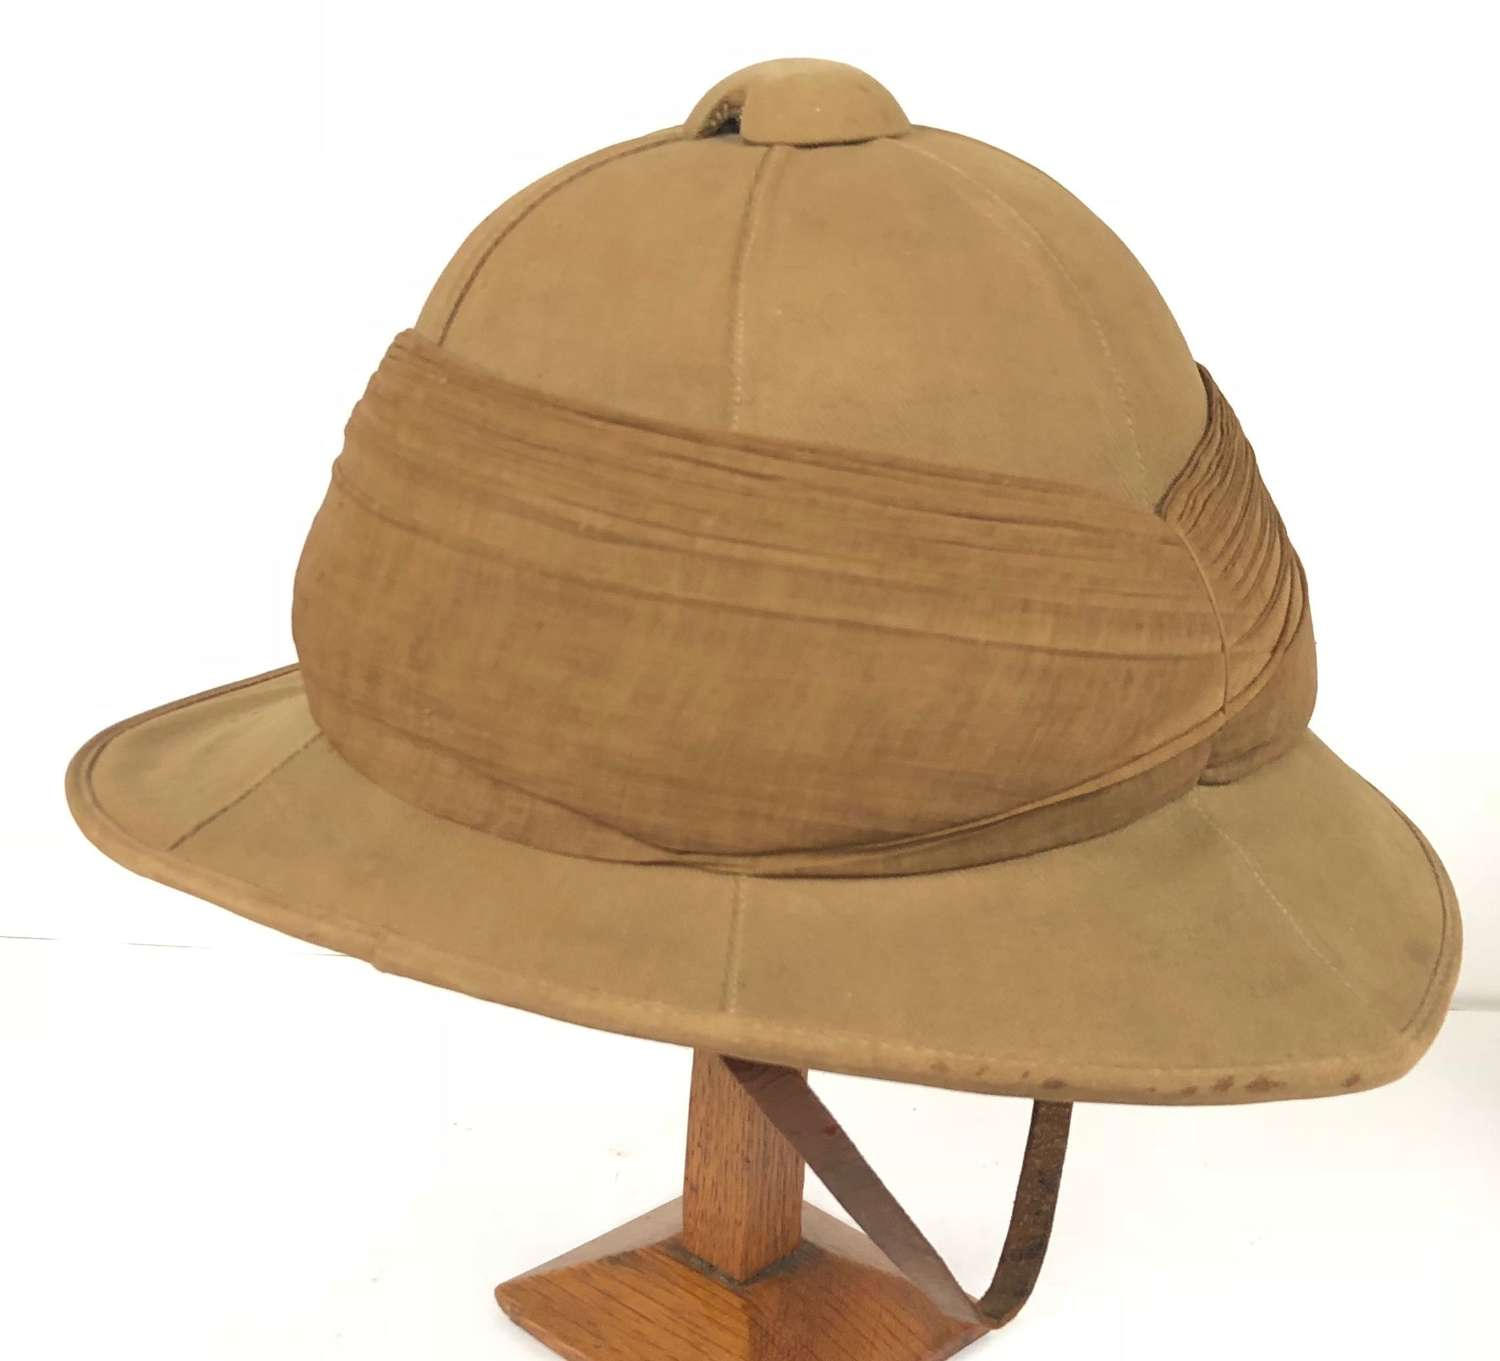 SOLD WW1 Period 1916 Other Rank's Wolseley Pattern Helmet